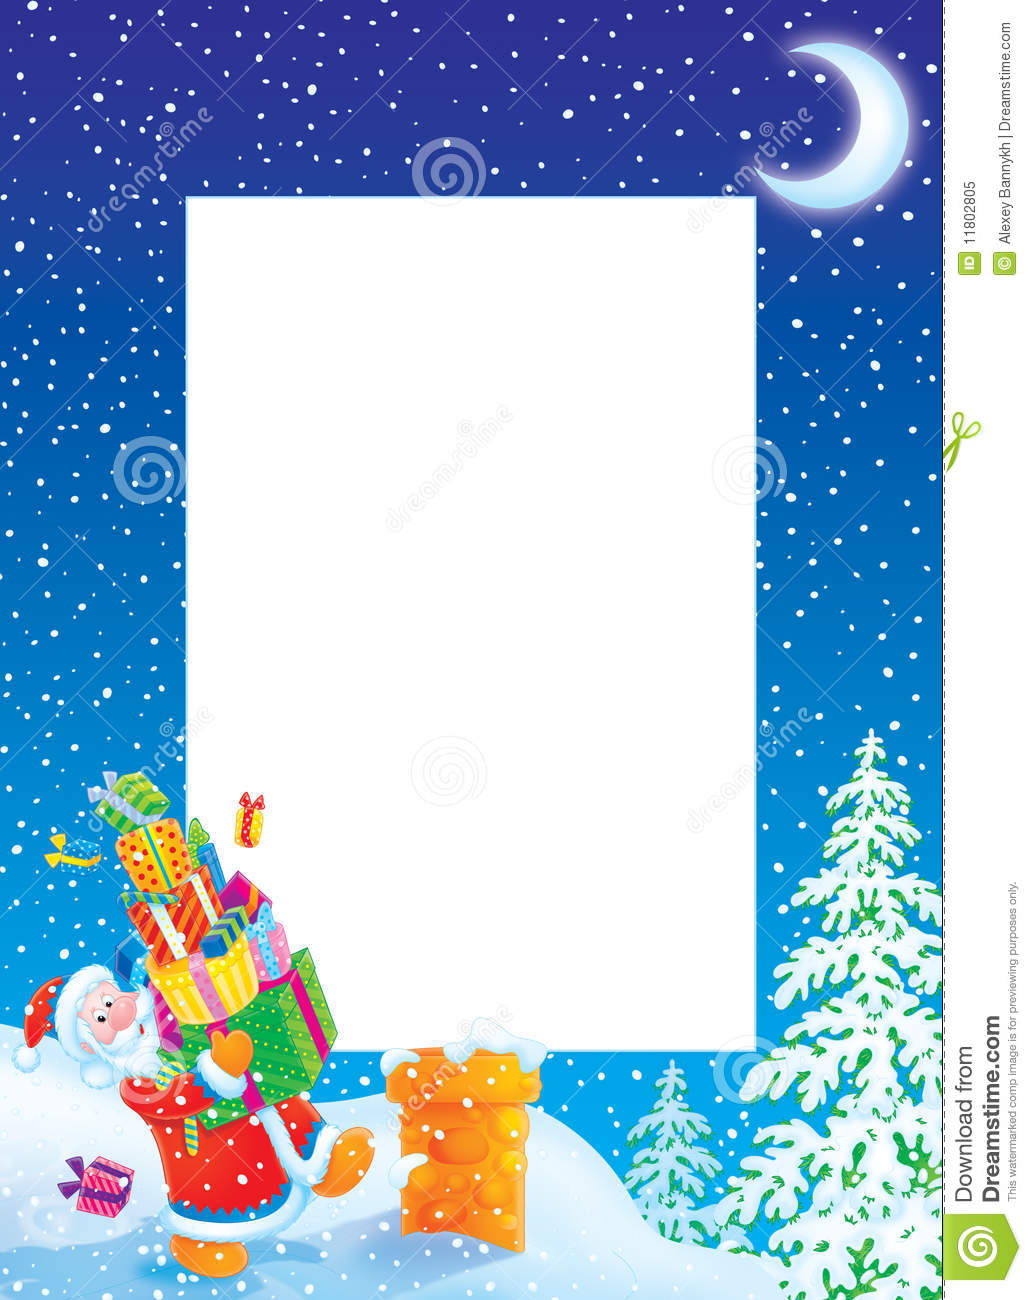 Santa Claus Borders | New Calendar Template Site